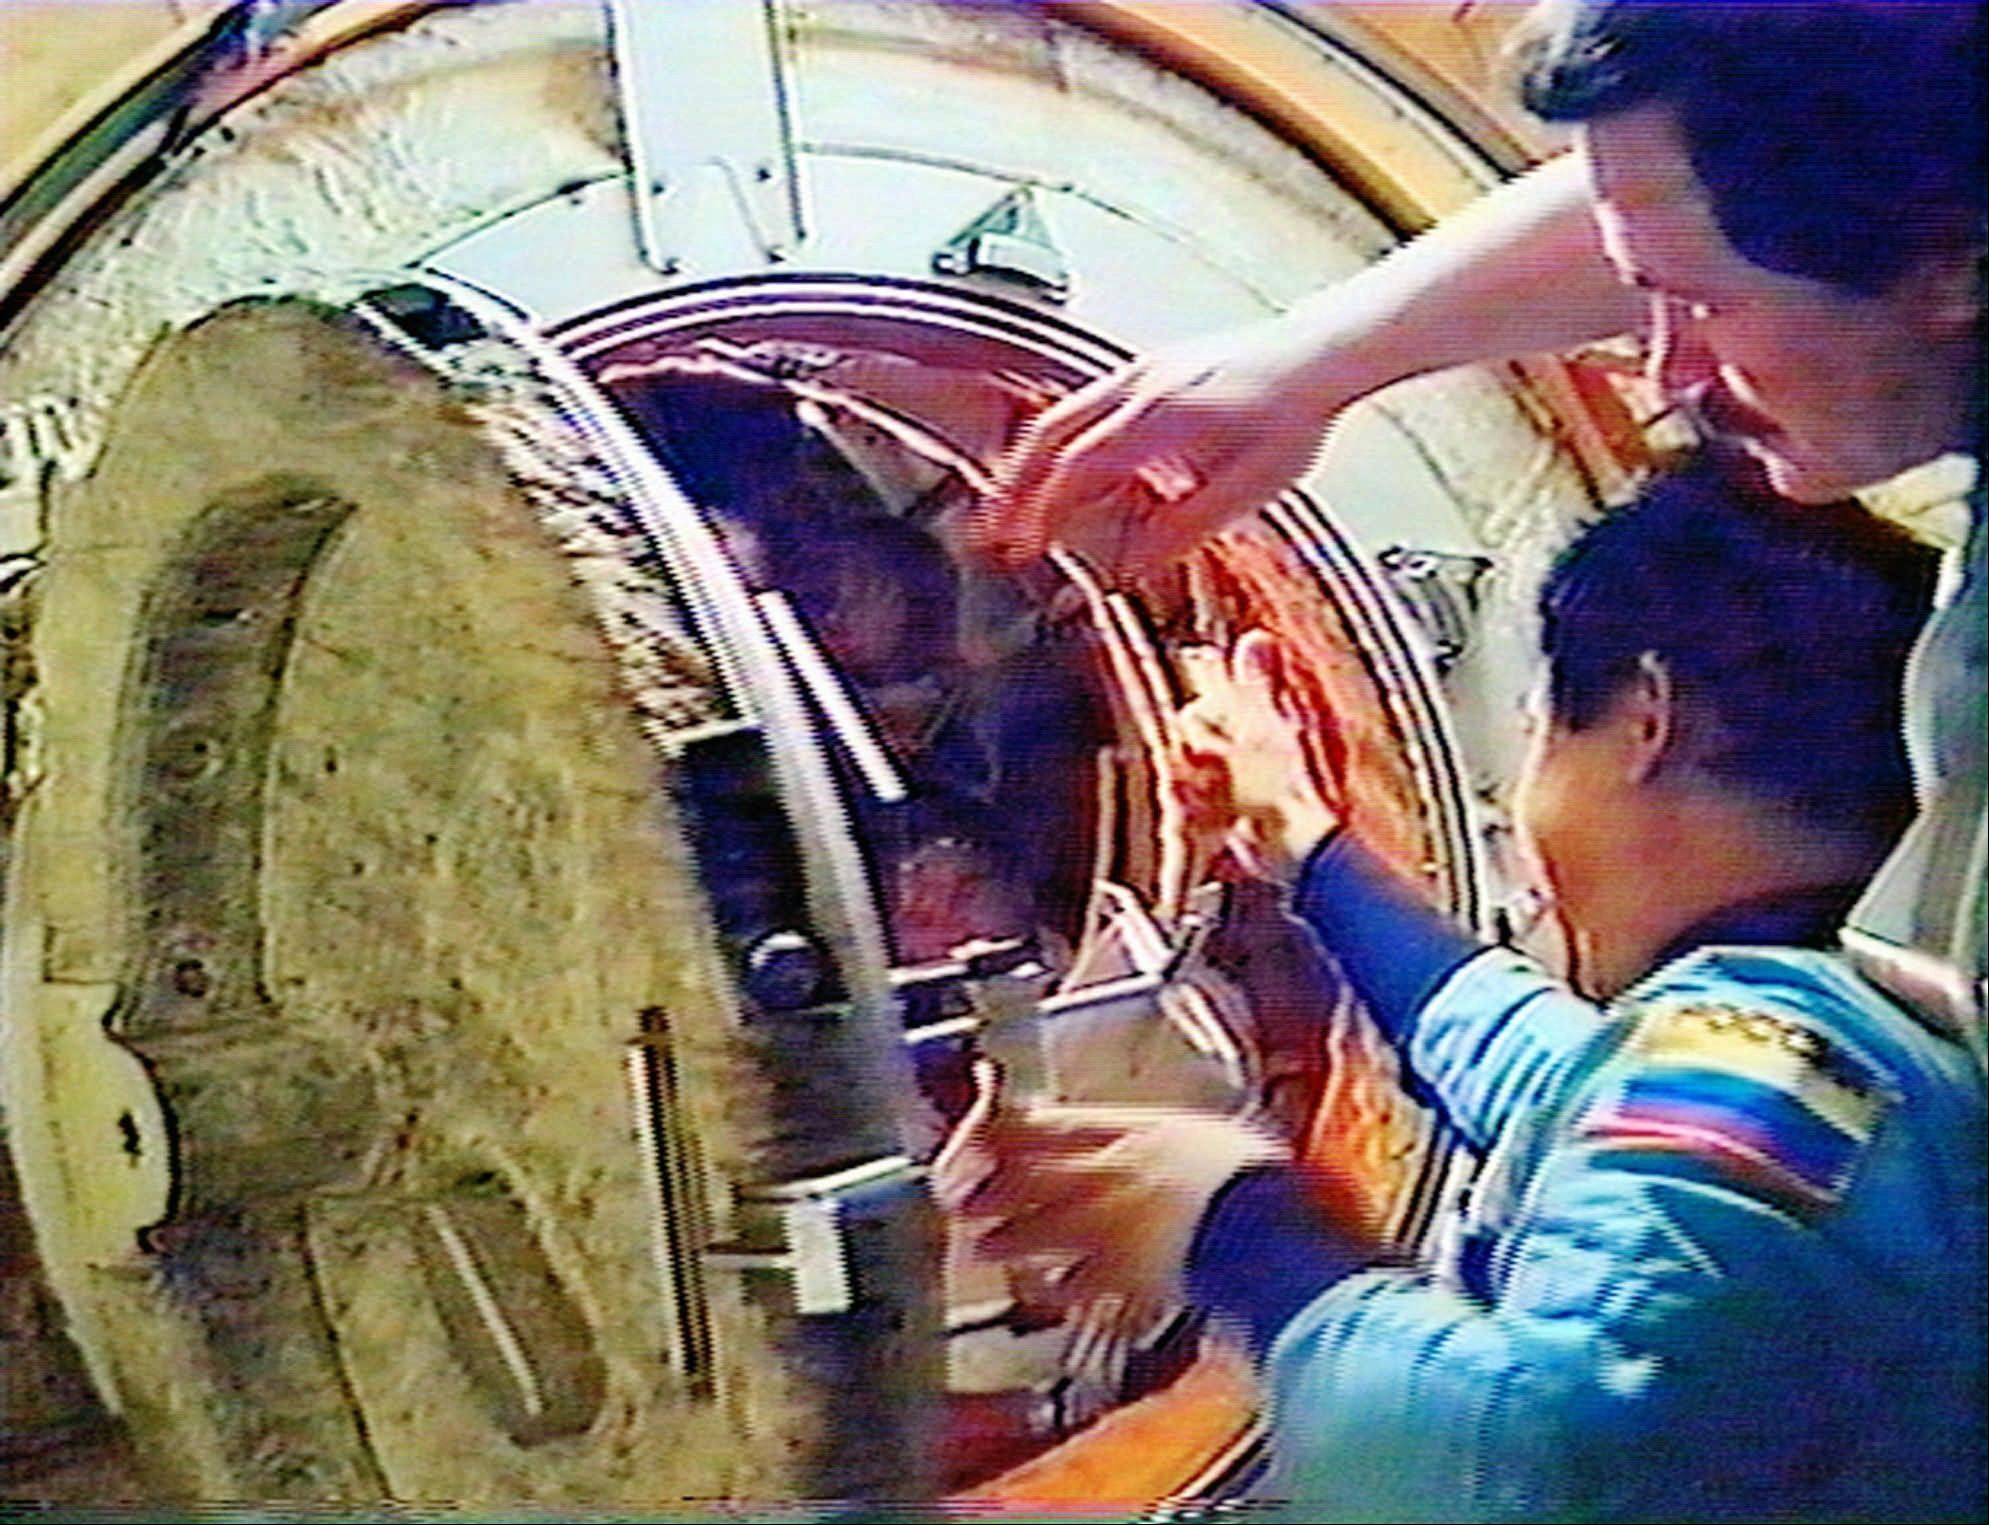 In this Monday, June 8, 1998 image made from video provided by NASA, Russian space station Mir cosmonauts Nikolai Budarin, top right, and Talgat Musabayev say goodbye to the crew of the space shuttle Discovery as they close the hatch linking the two spacecraft before undocking. Discovery was the ninth and last shuttle to dock with Mir.